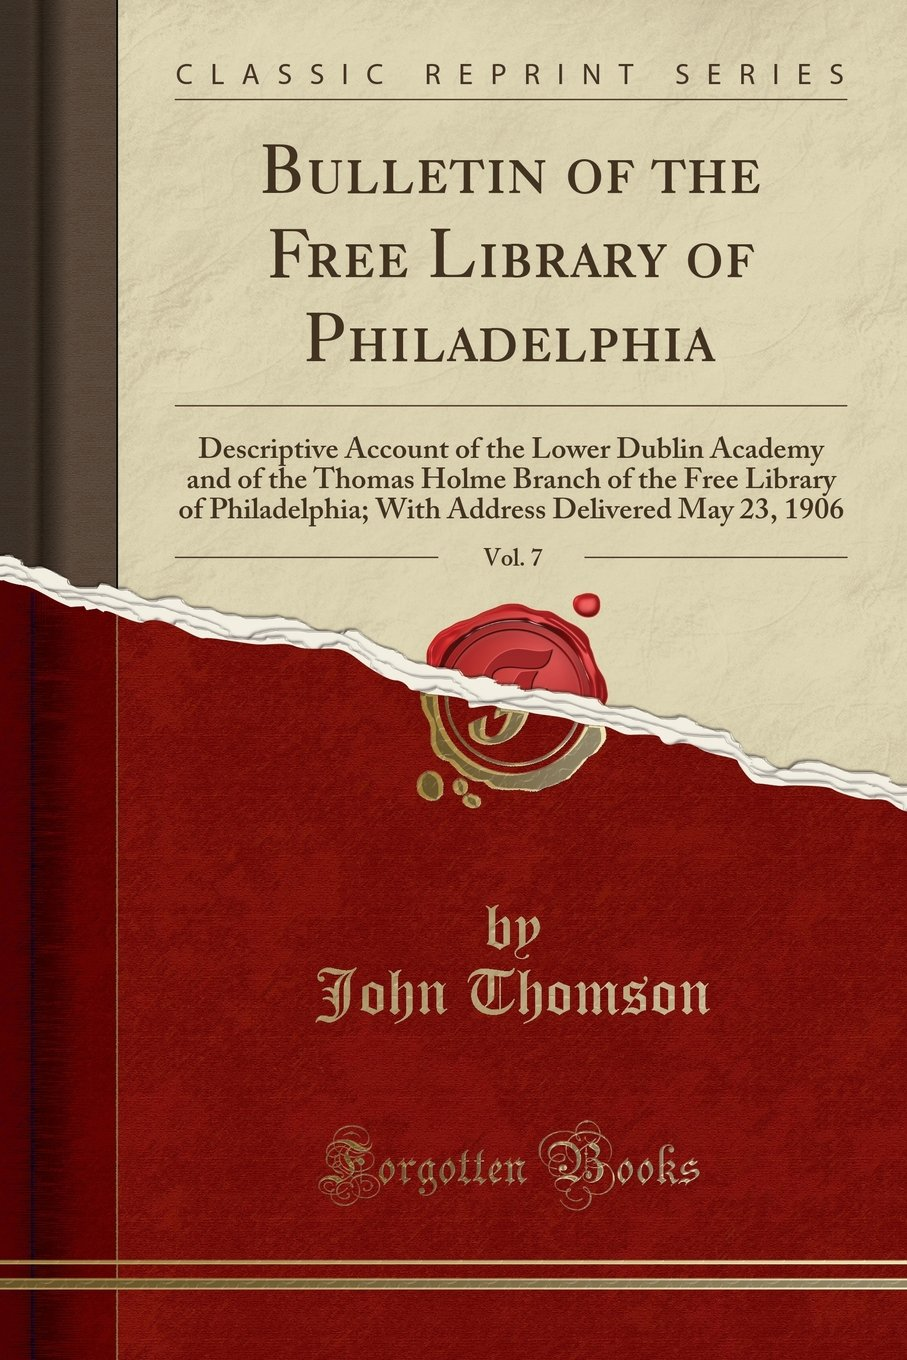 Bulletin of the Free Library of Philadelphia, Vol. 7: Descriptive Account of the Lower Dublin Academy and of the Thomas Holme Branch of the Free ... Delivered May 23, 1906 (Classic Reprint) ebook